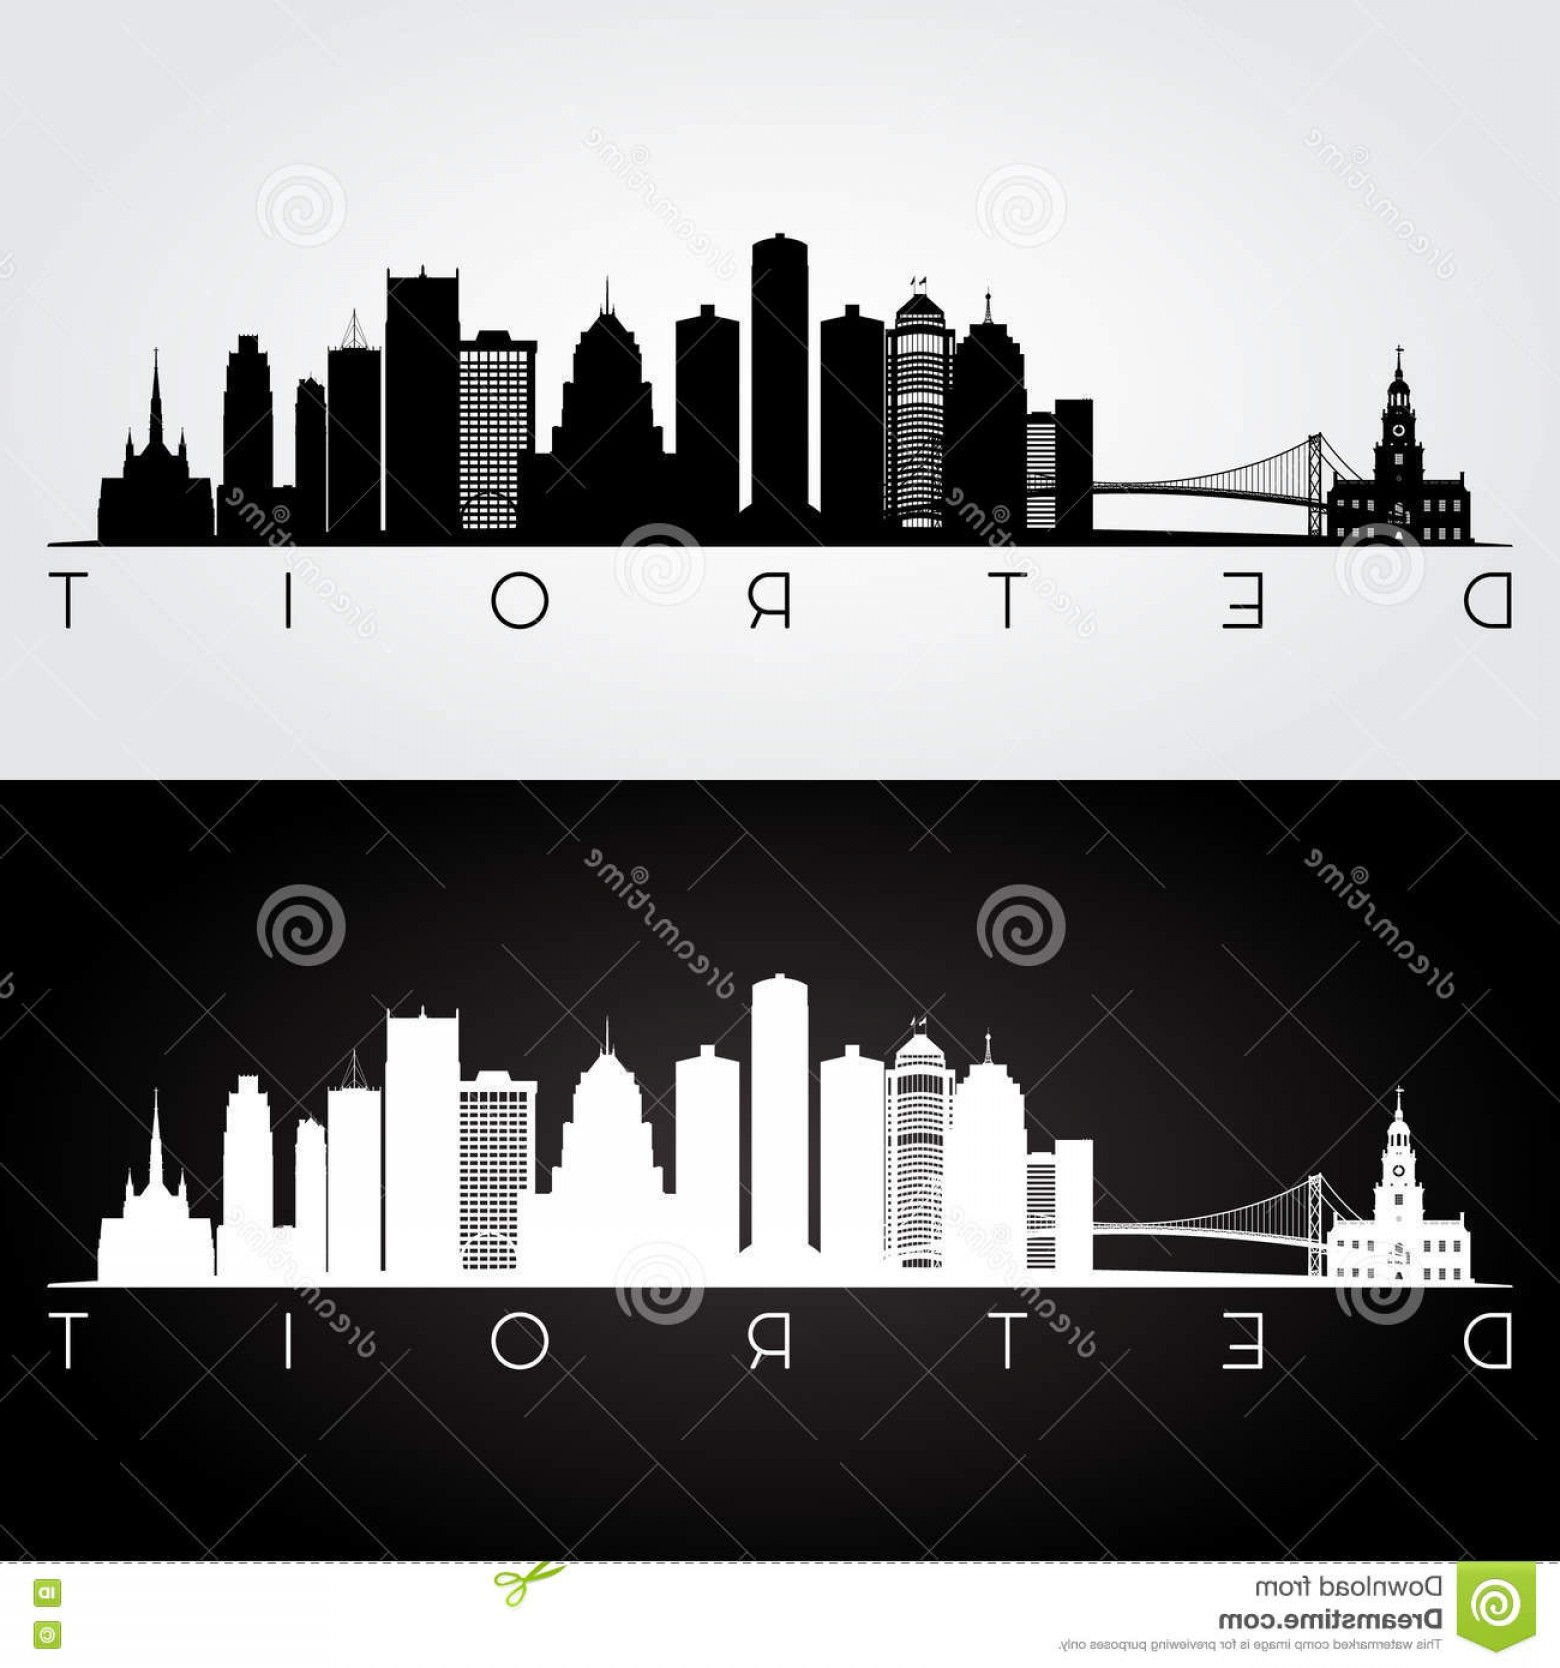 Michigan Vector Artwork: Stock Illustration Detroit Skyline Silhouette Usa Landmarks Black White Design Vector Illustration Image